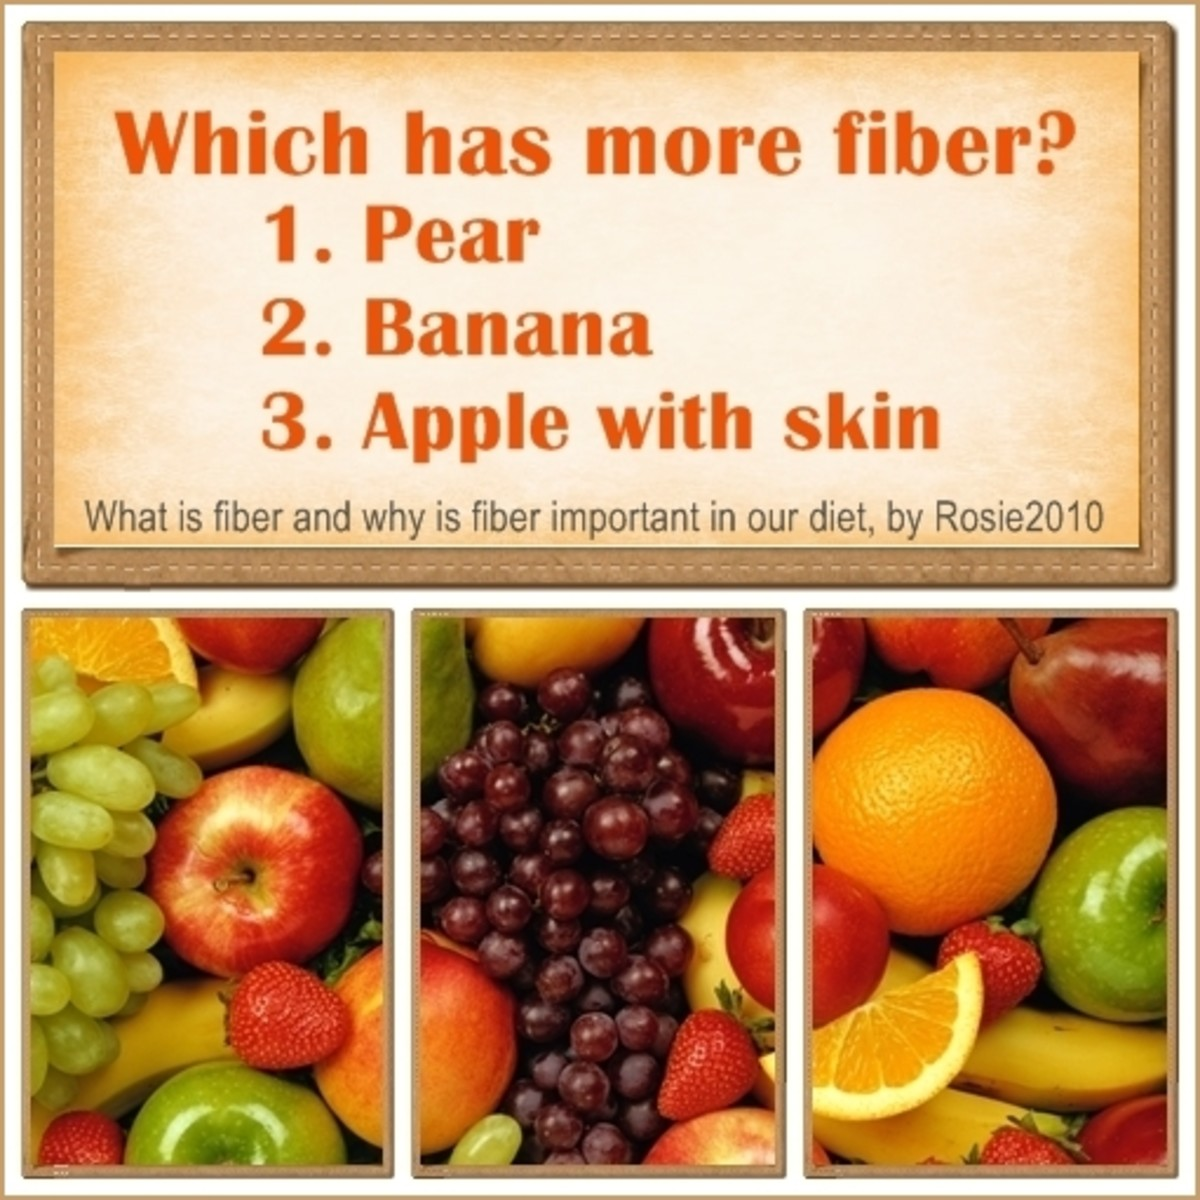 What is Fiber and Why is Fiber Important in our Diet, by Rosie2010 - Answer:  #3 Apple with skin